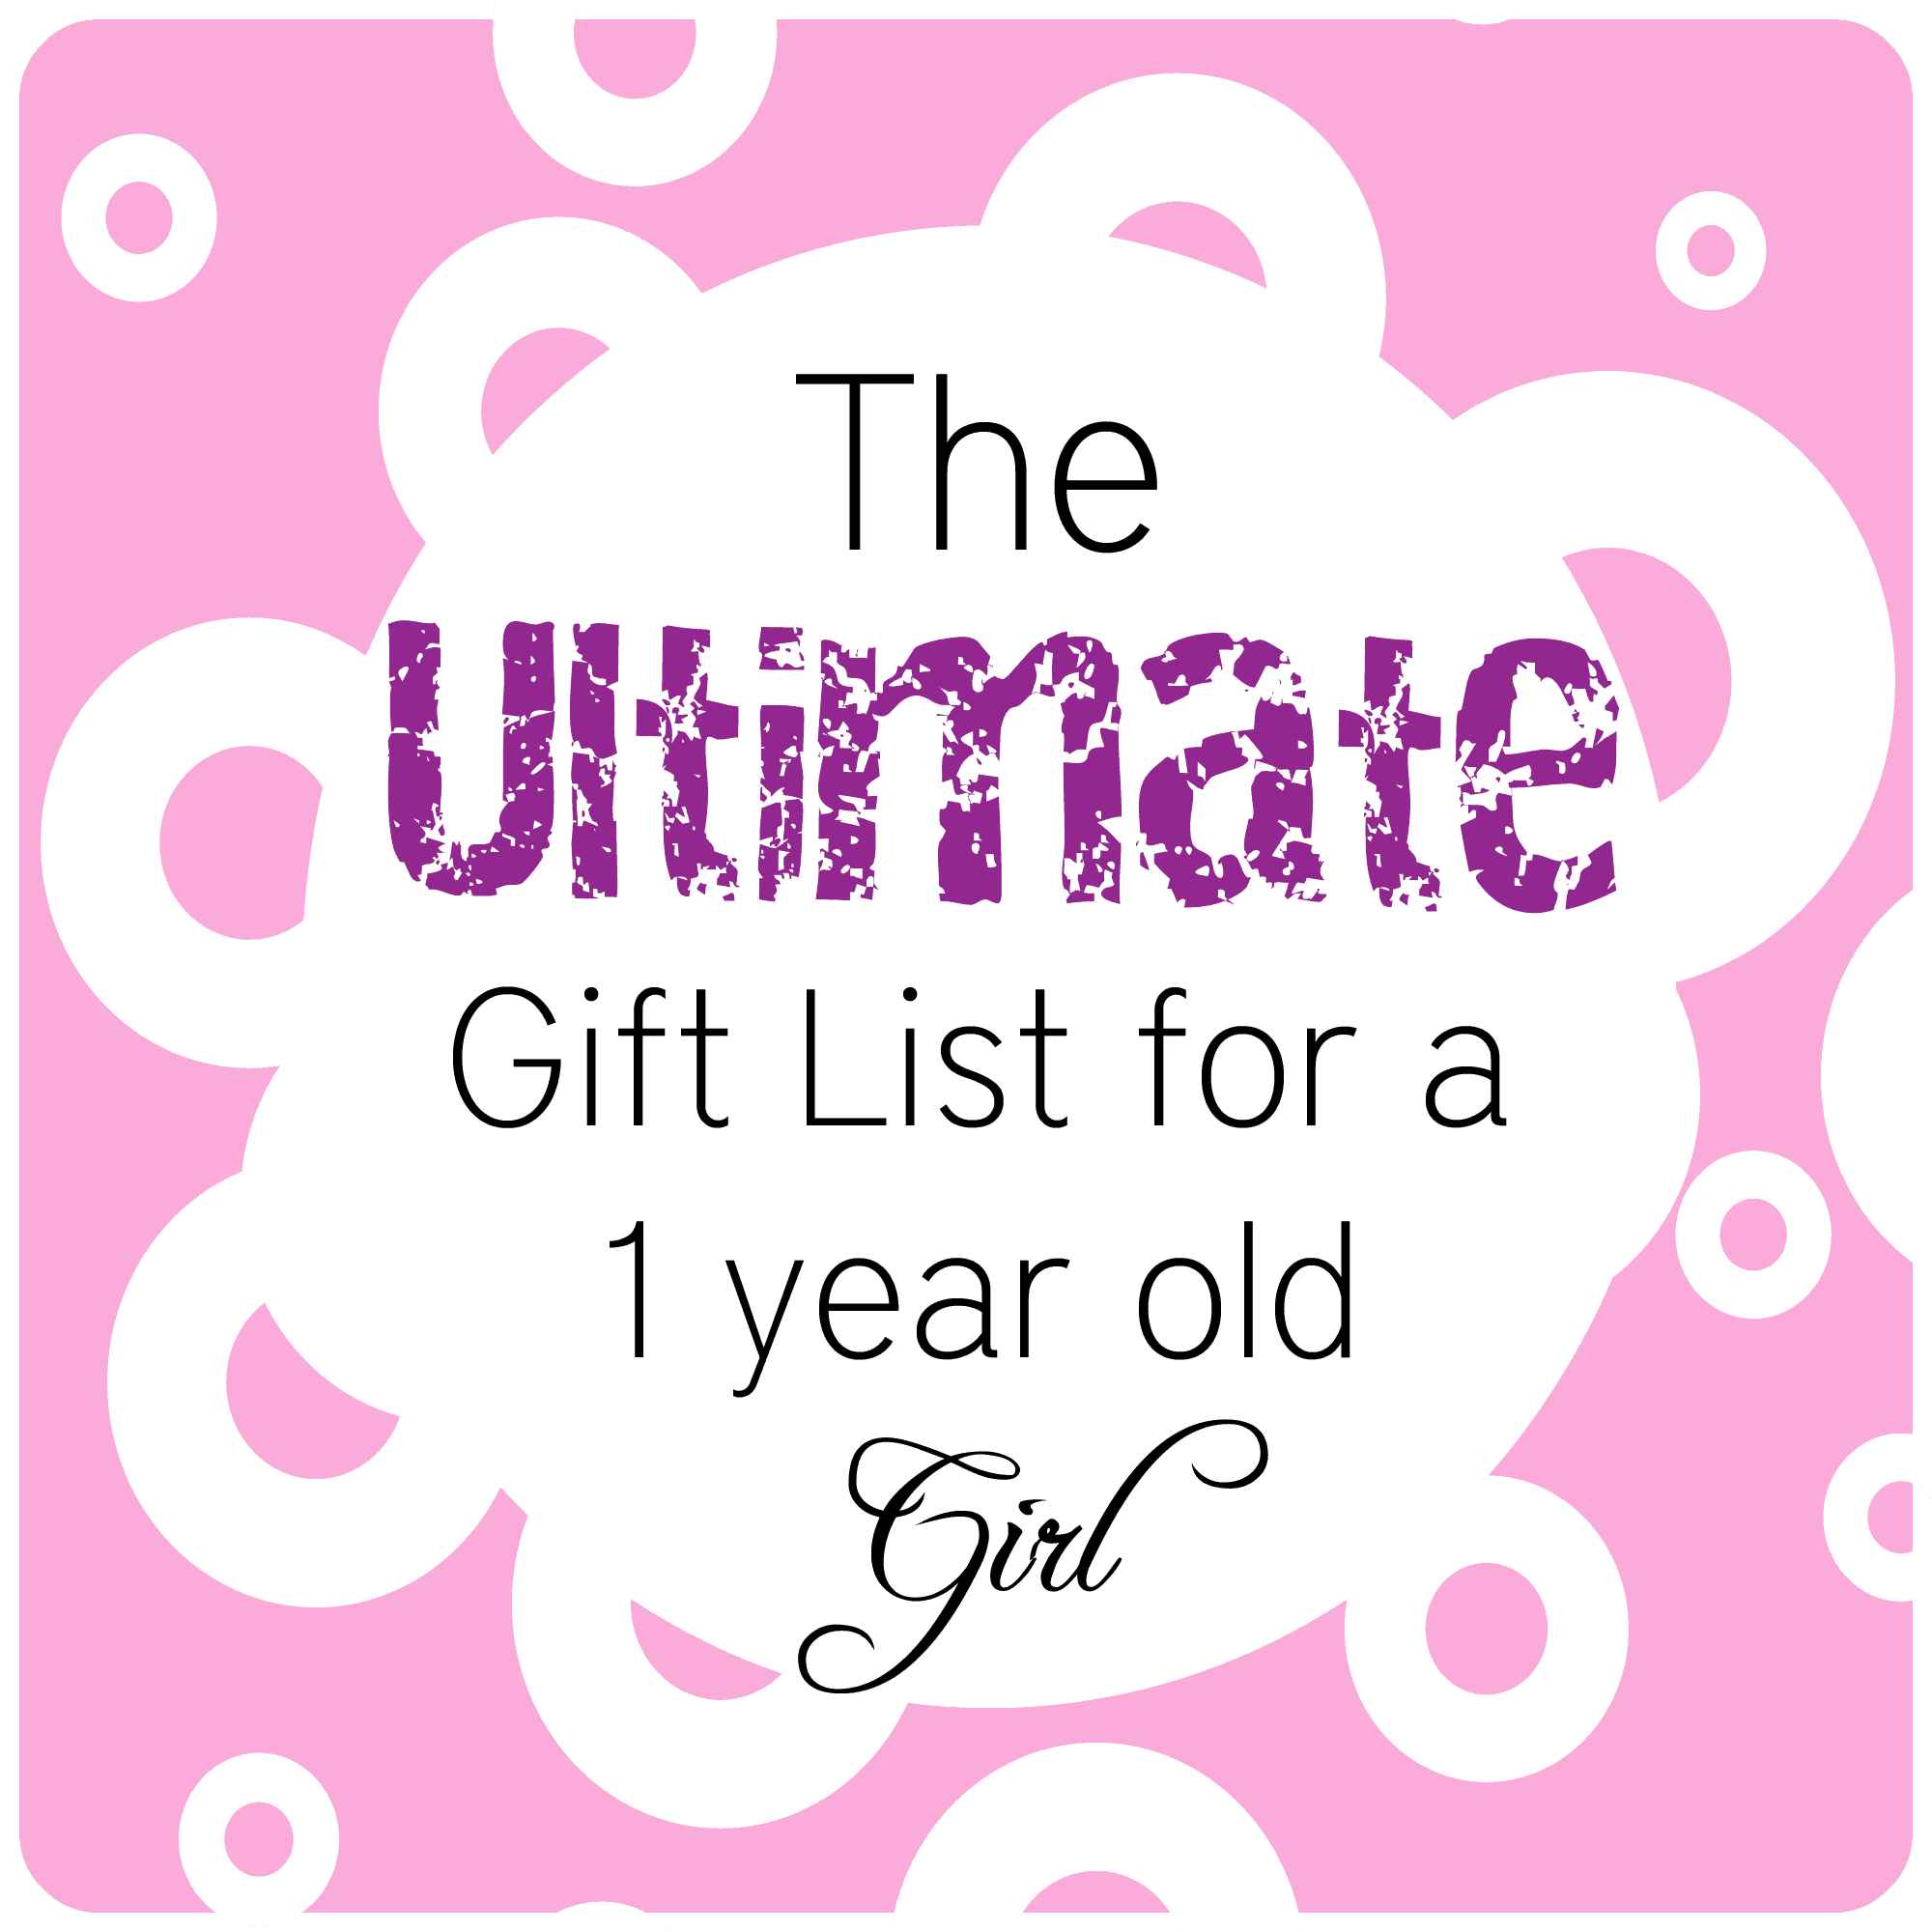 The BEST Gifts for 1 year old girl